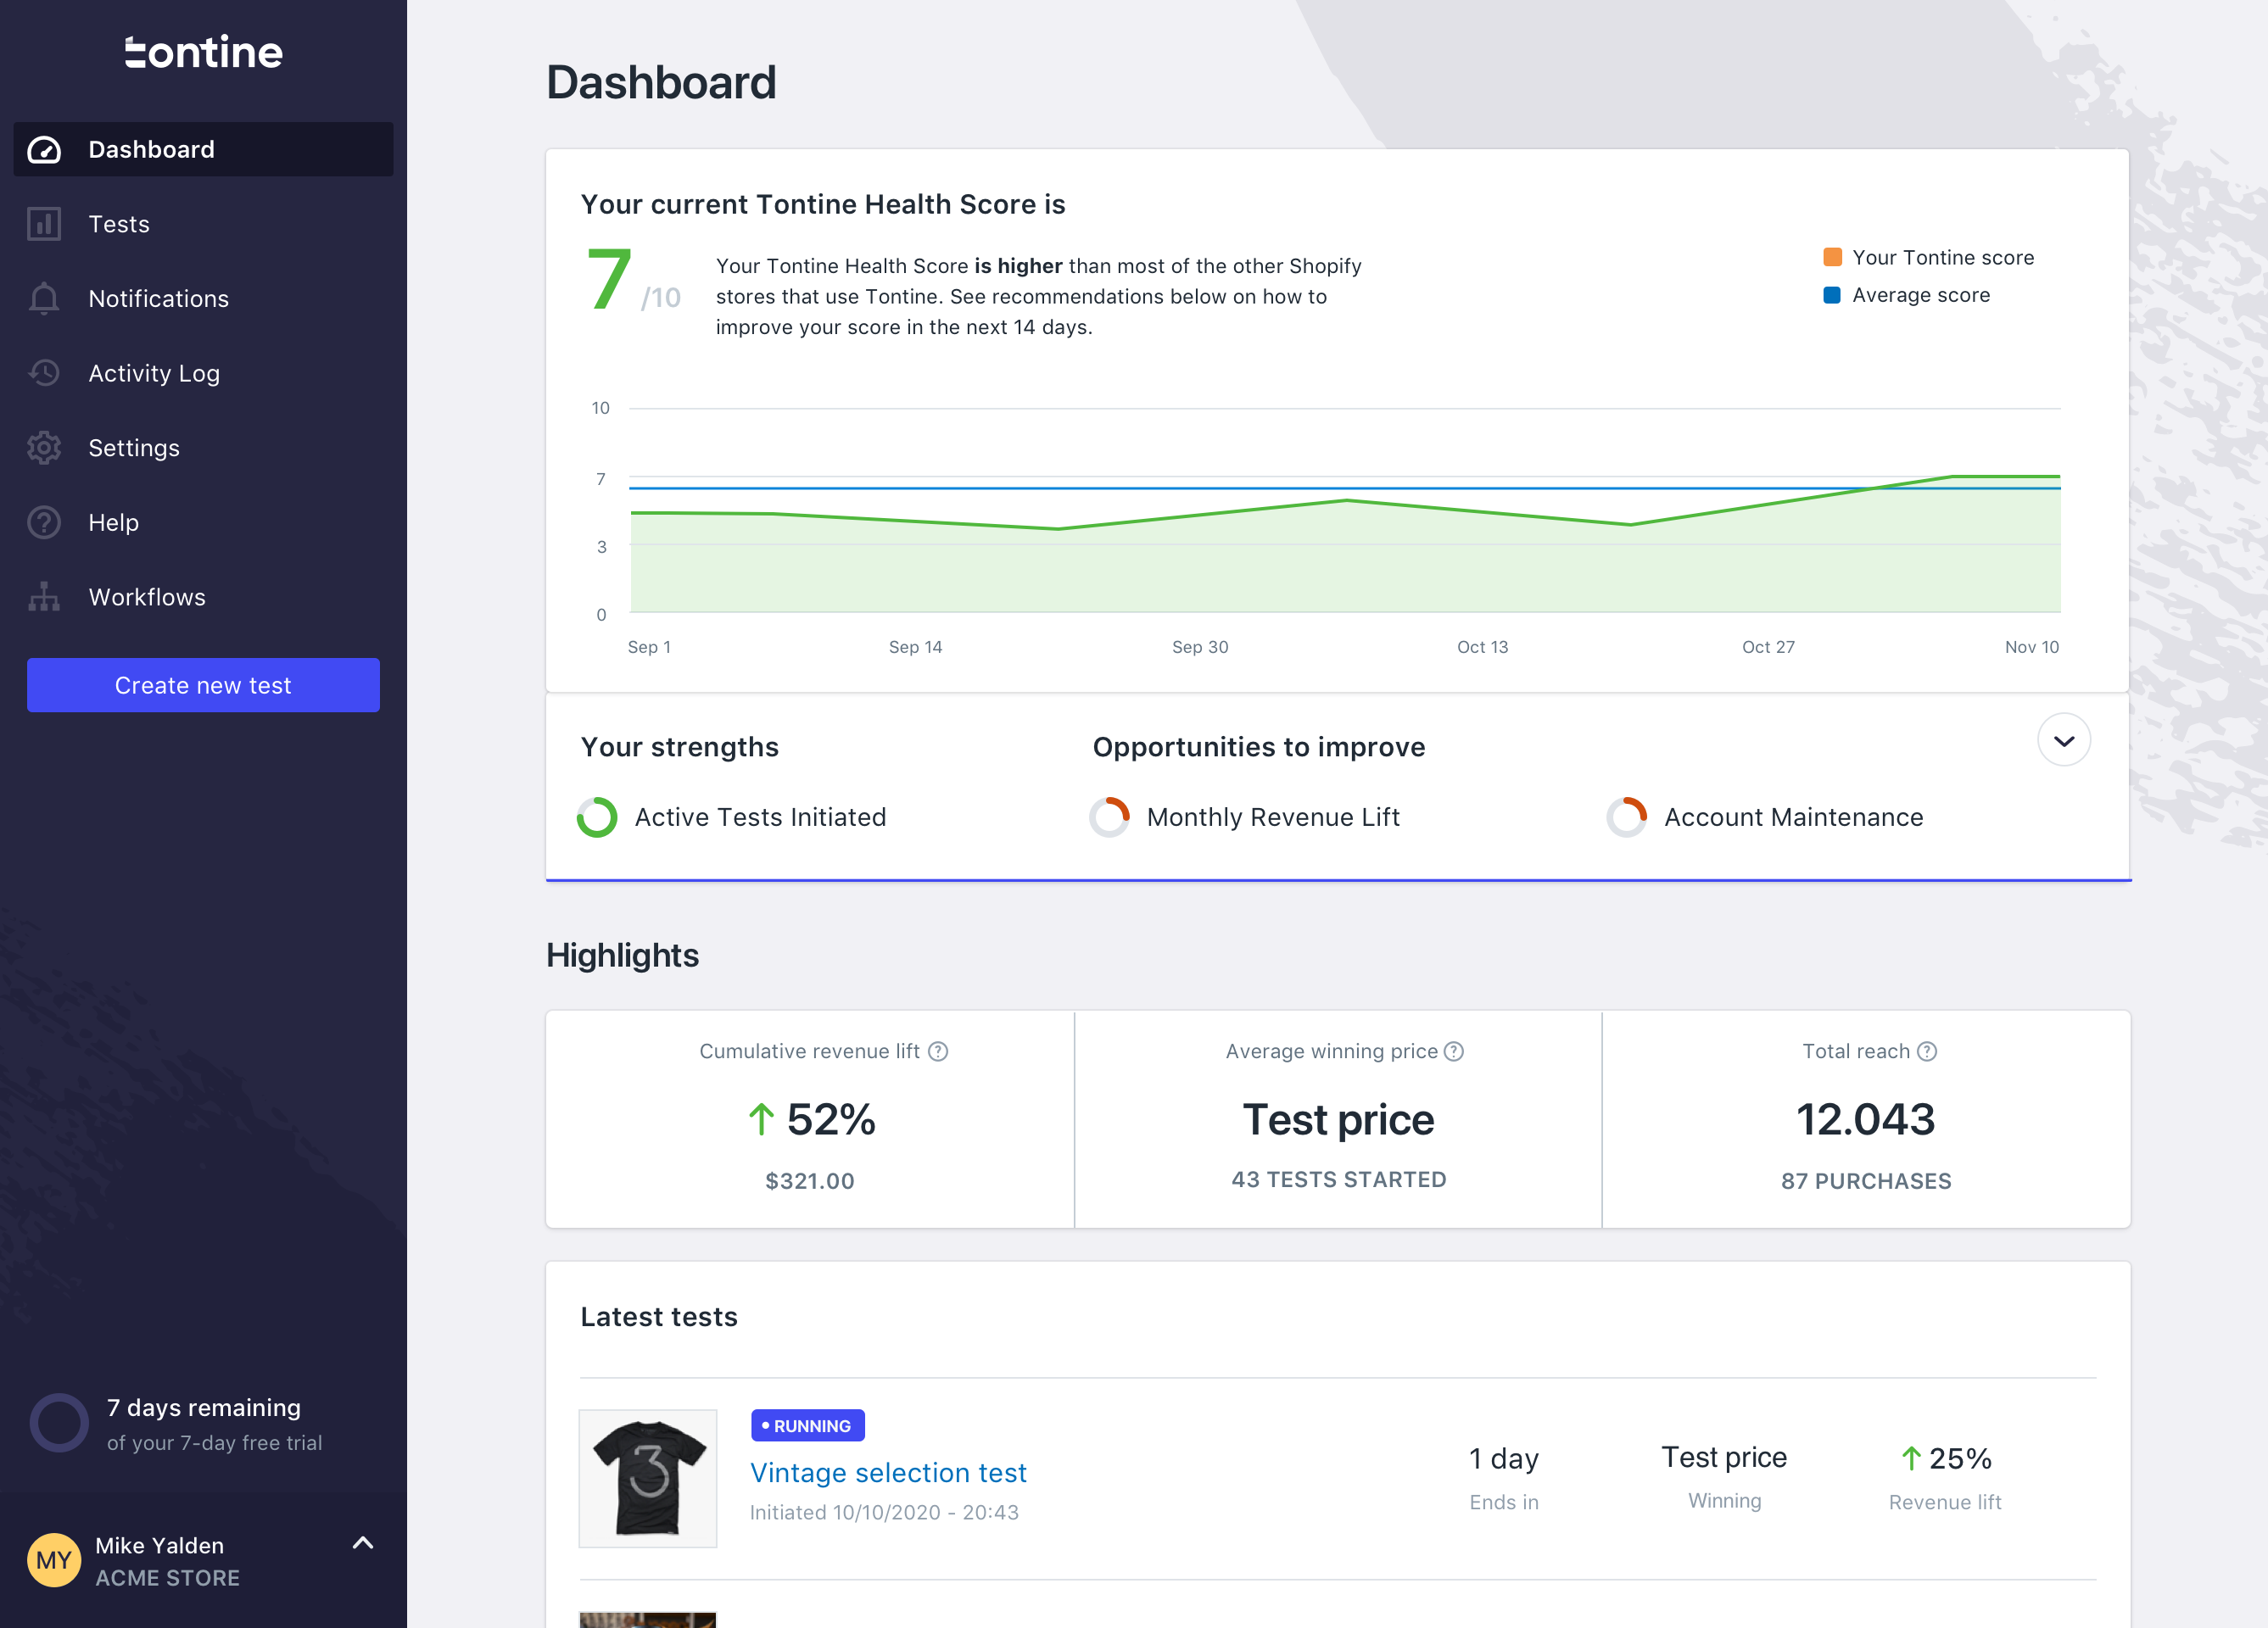 Tontine screenshot: Dashboard: See all of the latest updates and your current Tontine Health Score at a glance